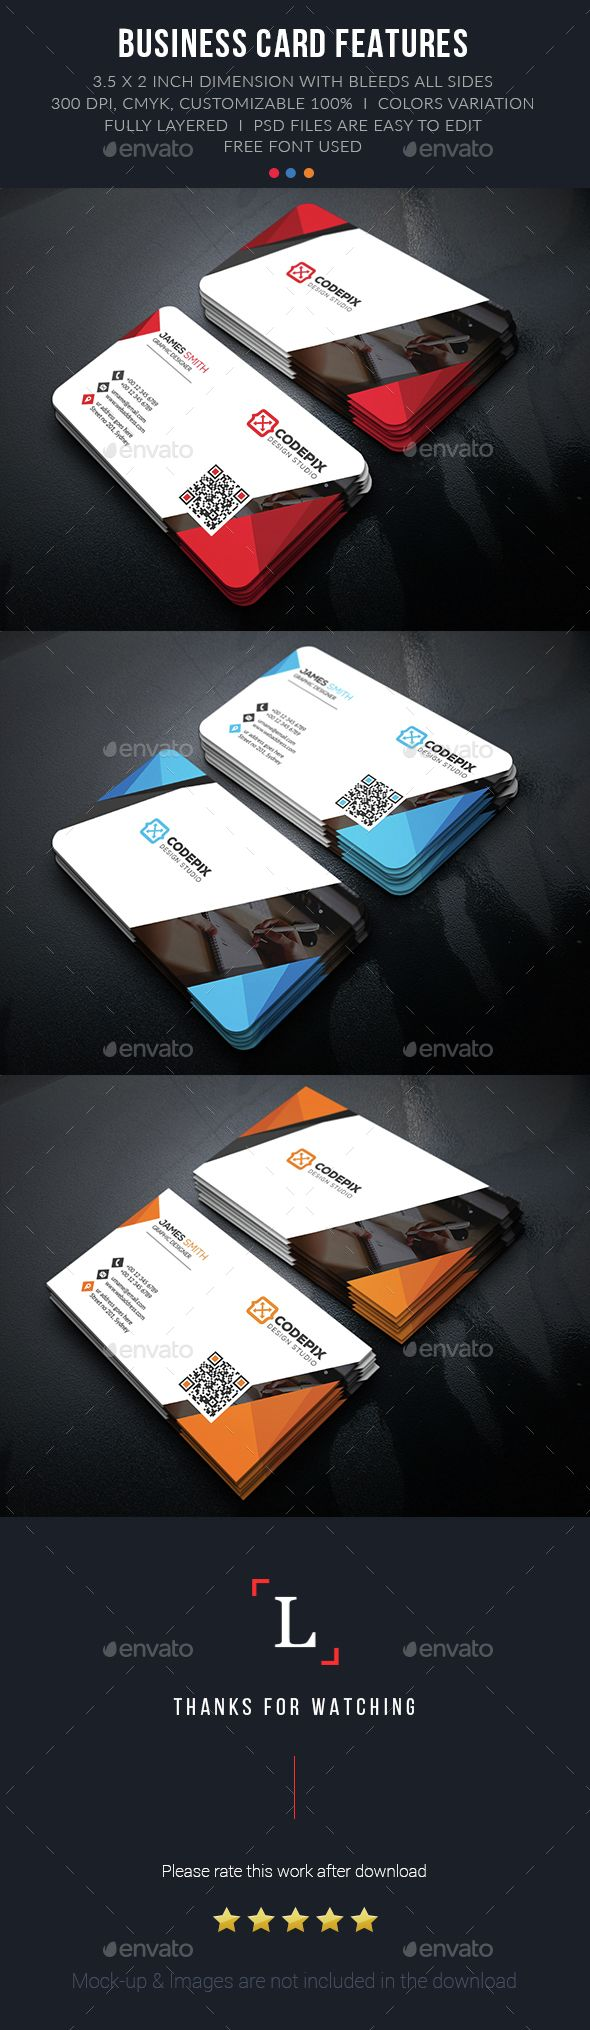 160 Best Business Cards Images On Pinterest Business Card Design